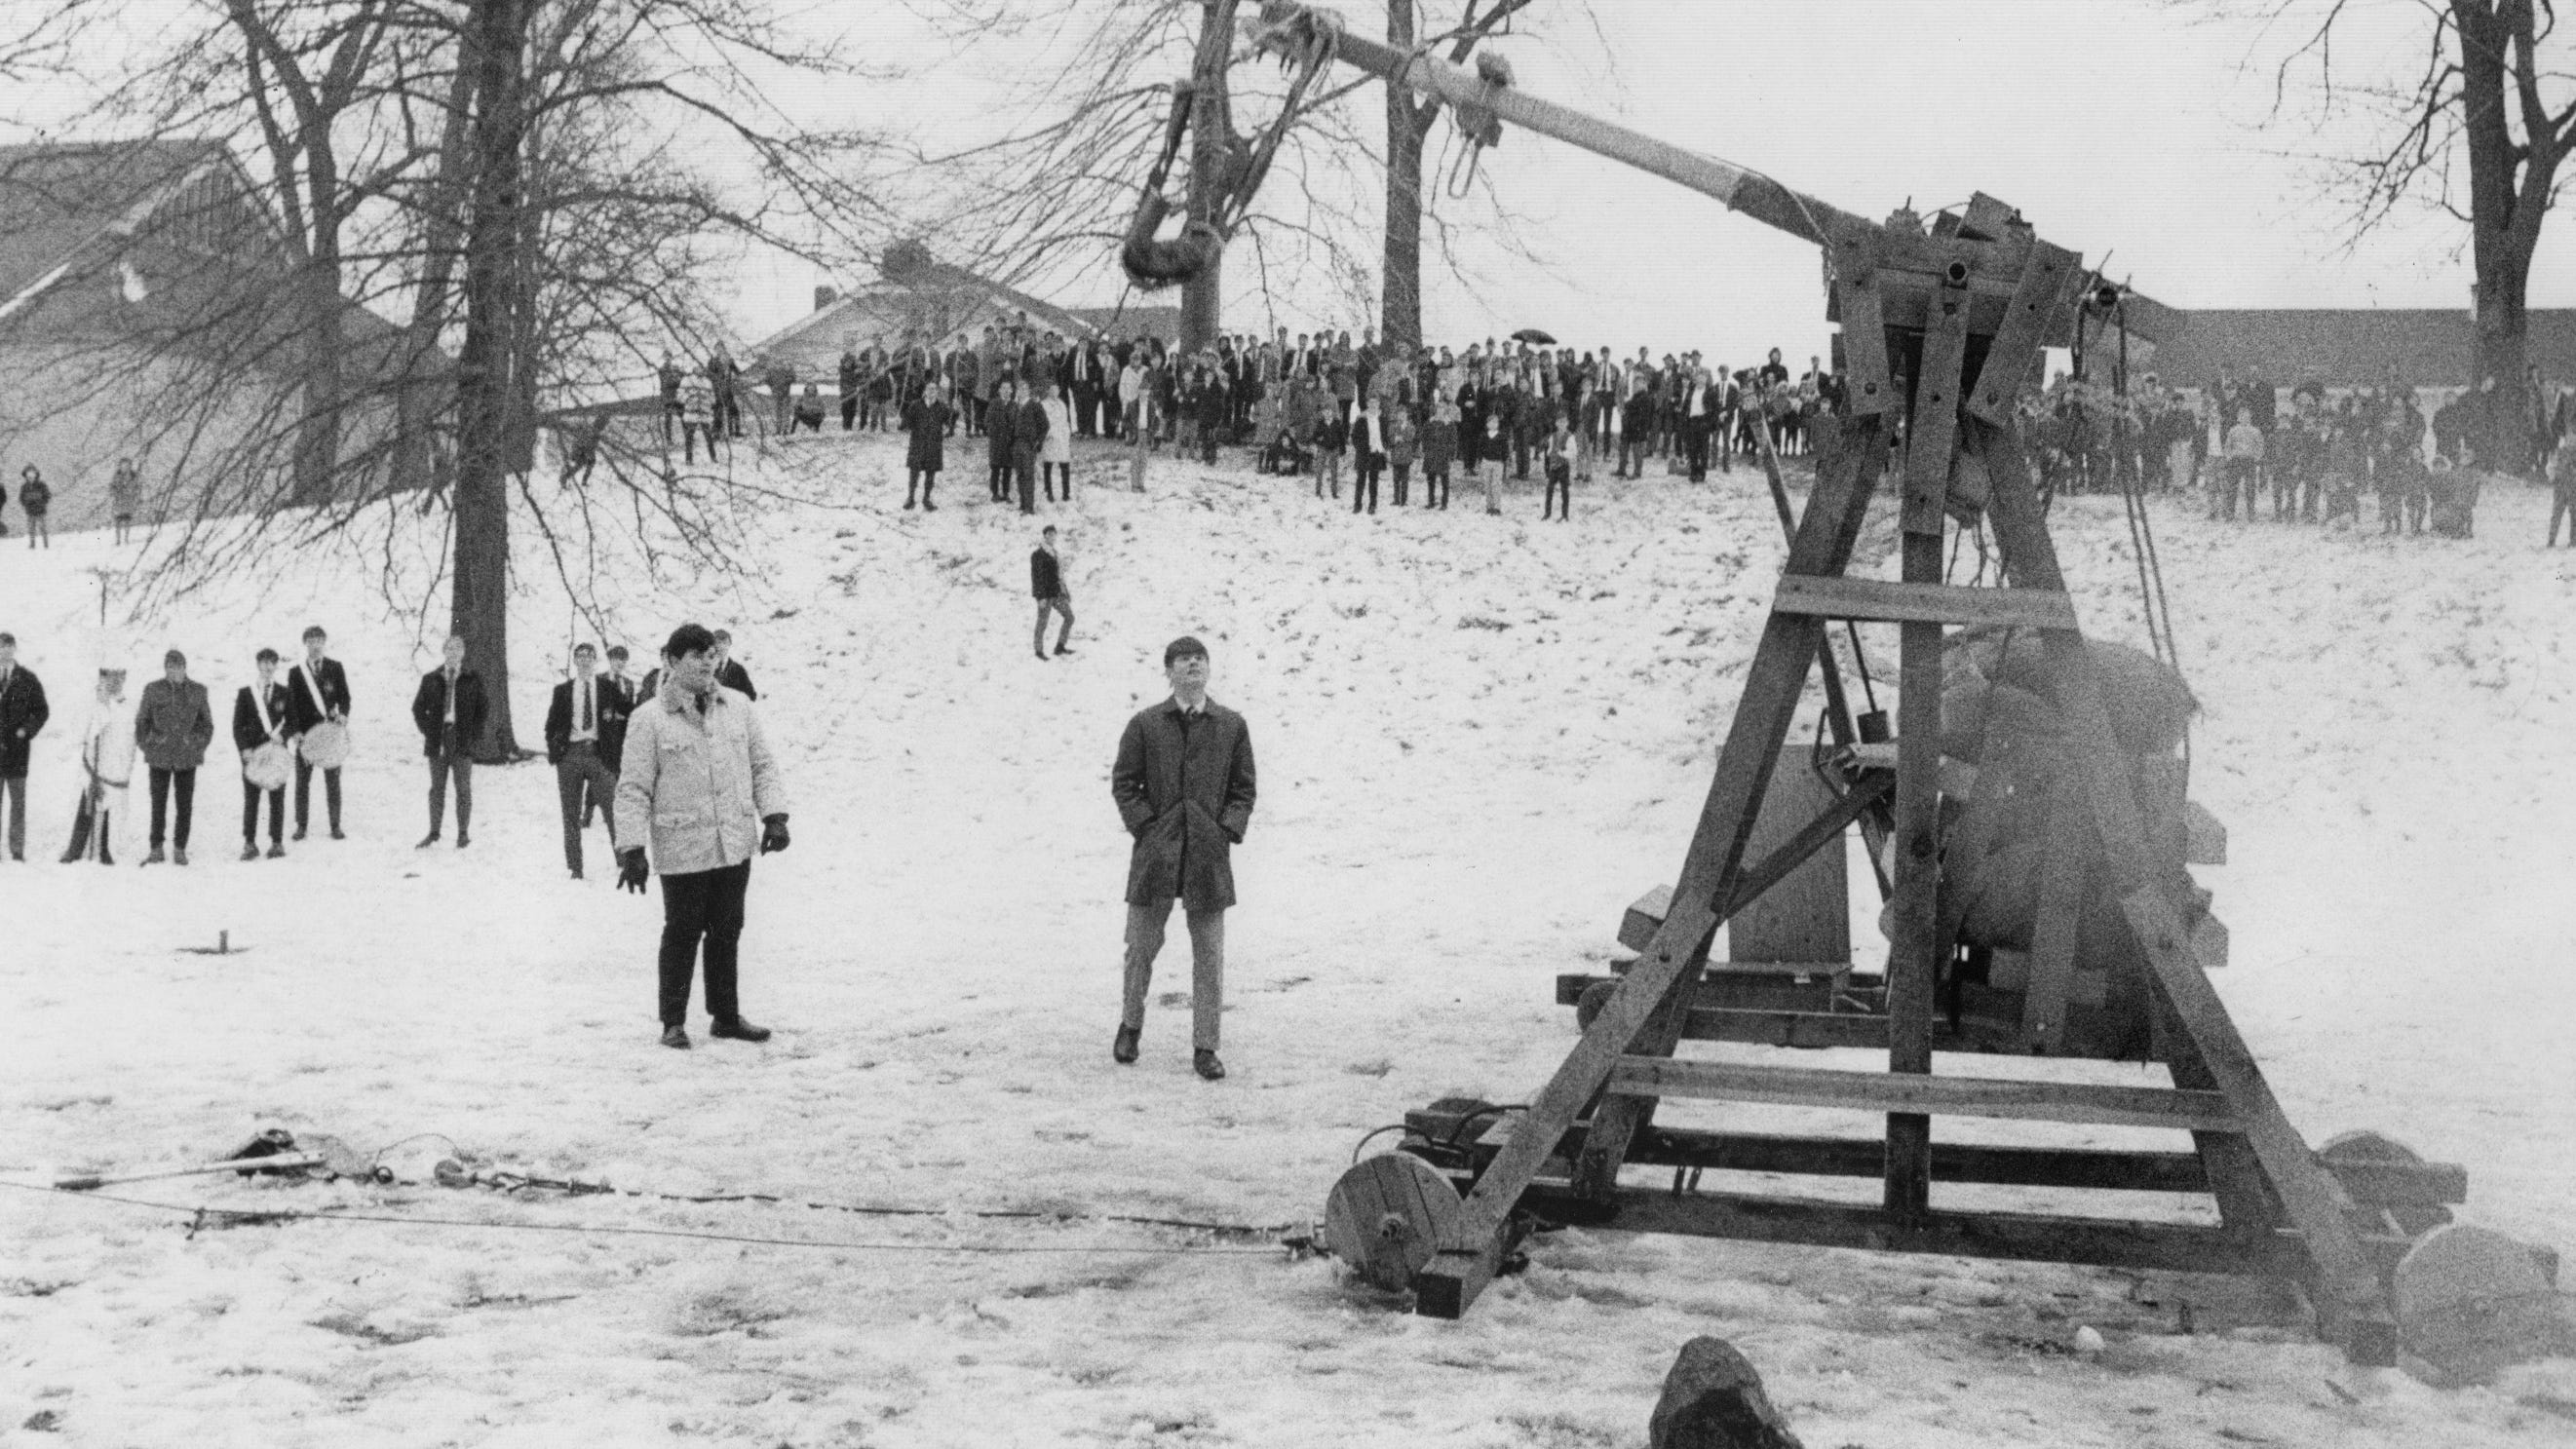 'It was a total disaster': How Indy's first catapult launch failed